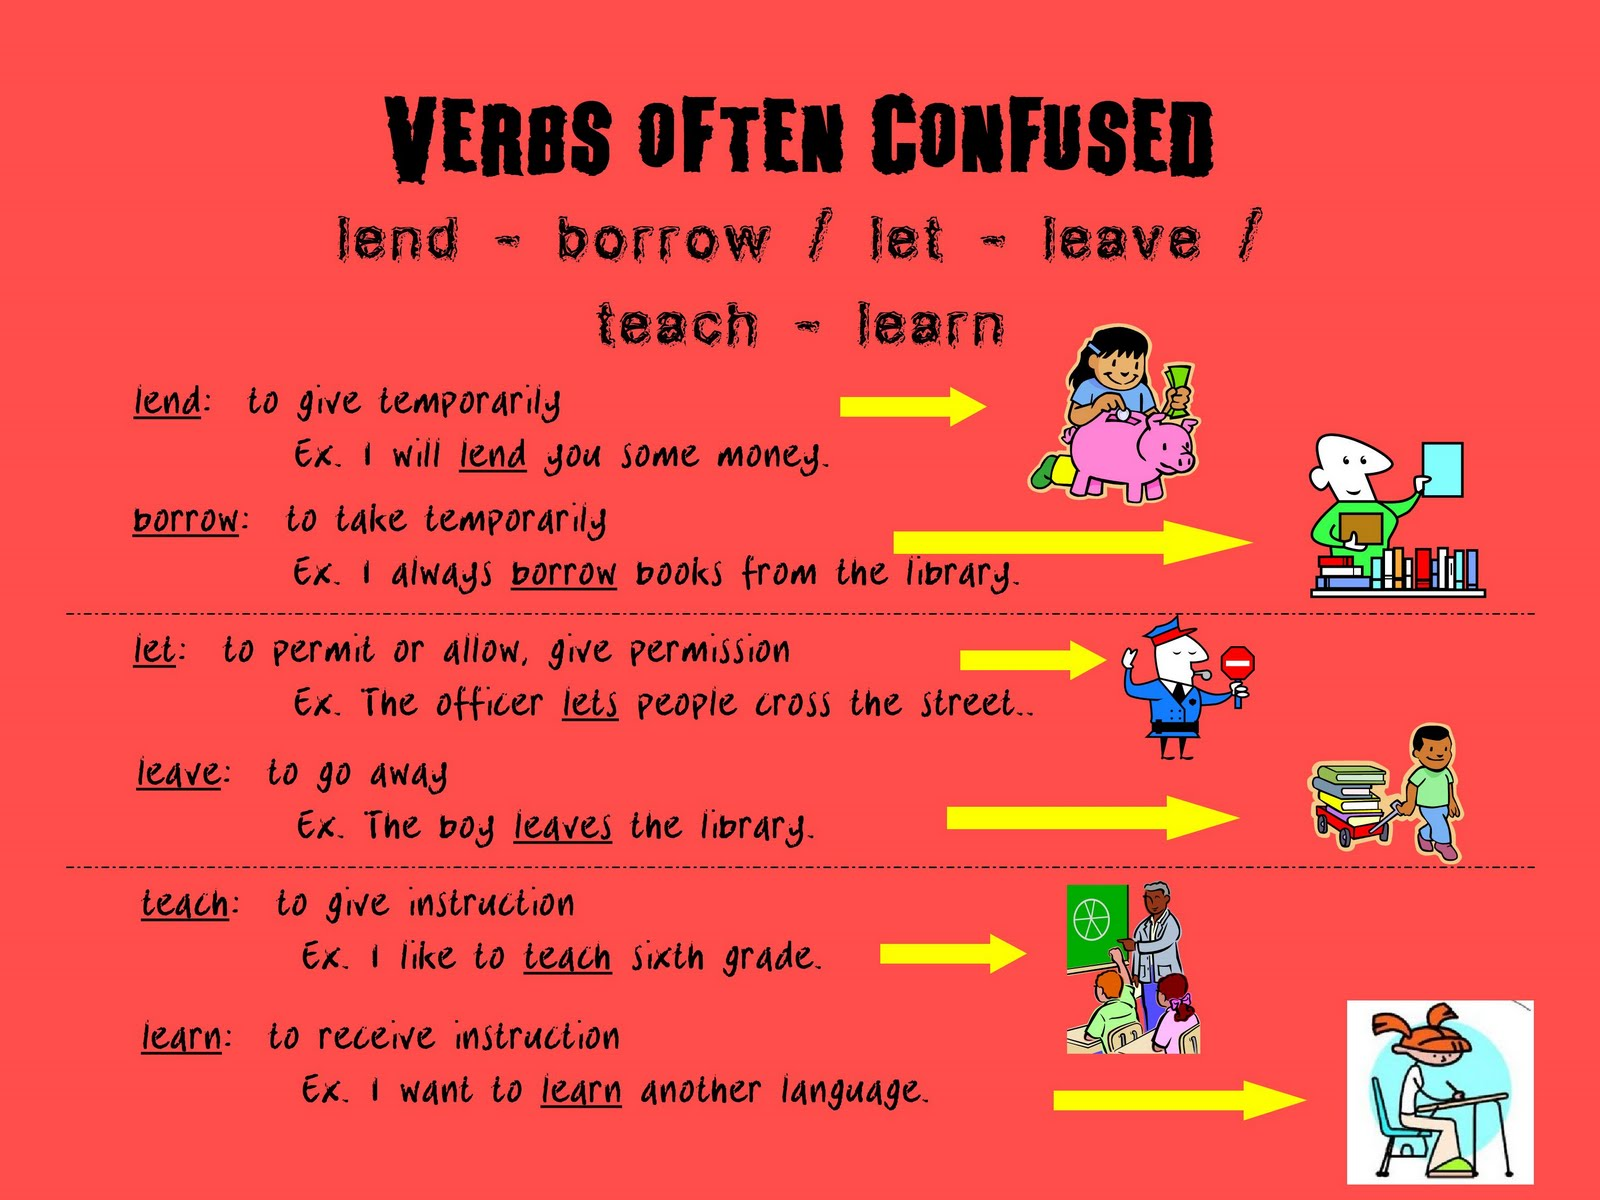 6th Grade Verbs Often Confused